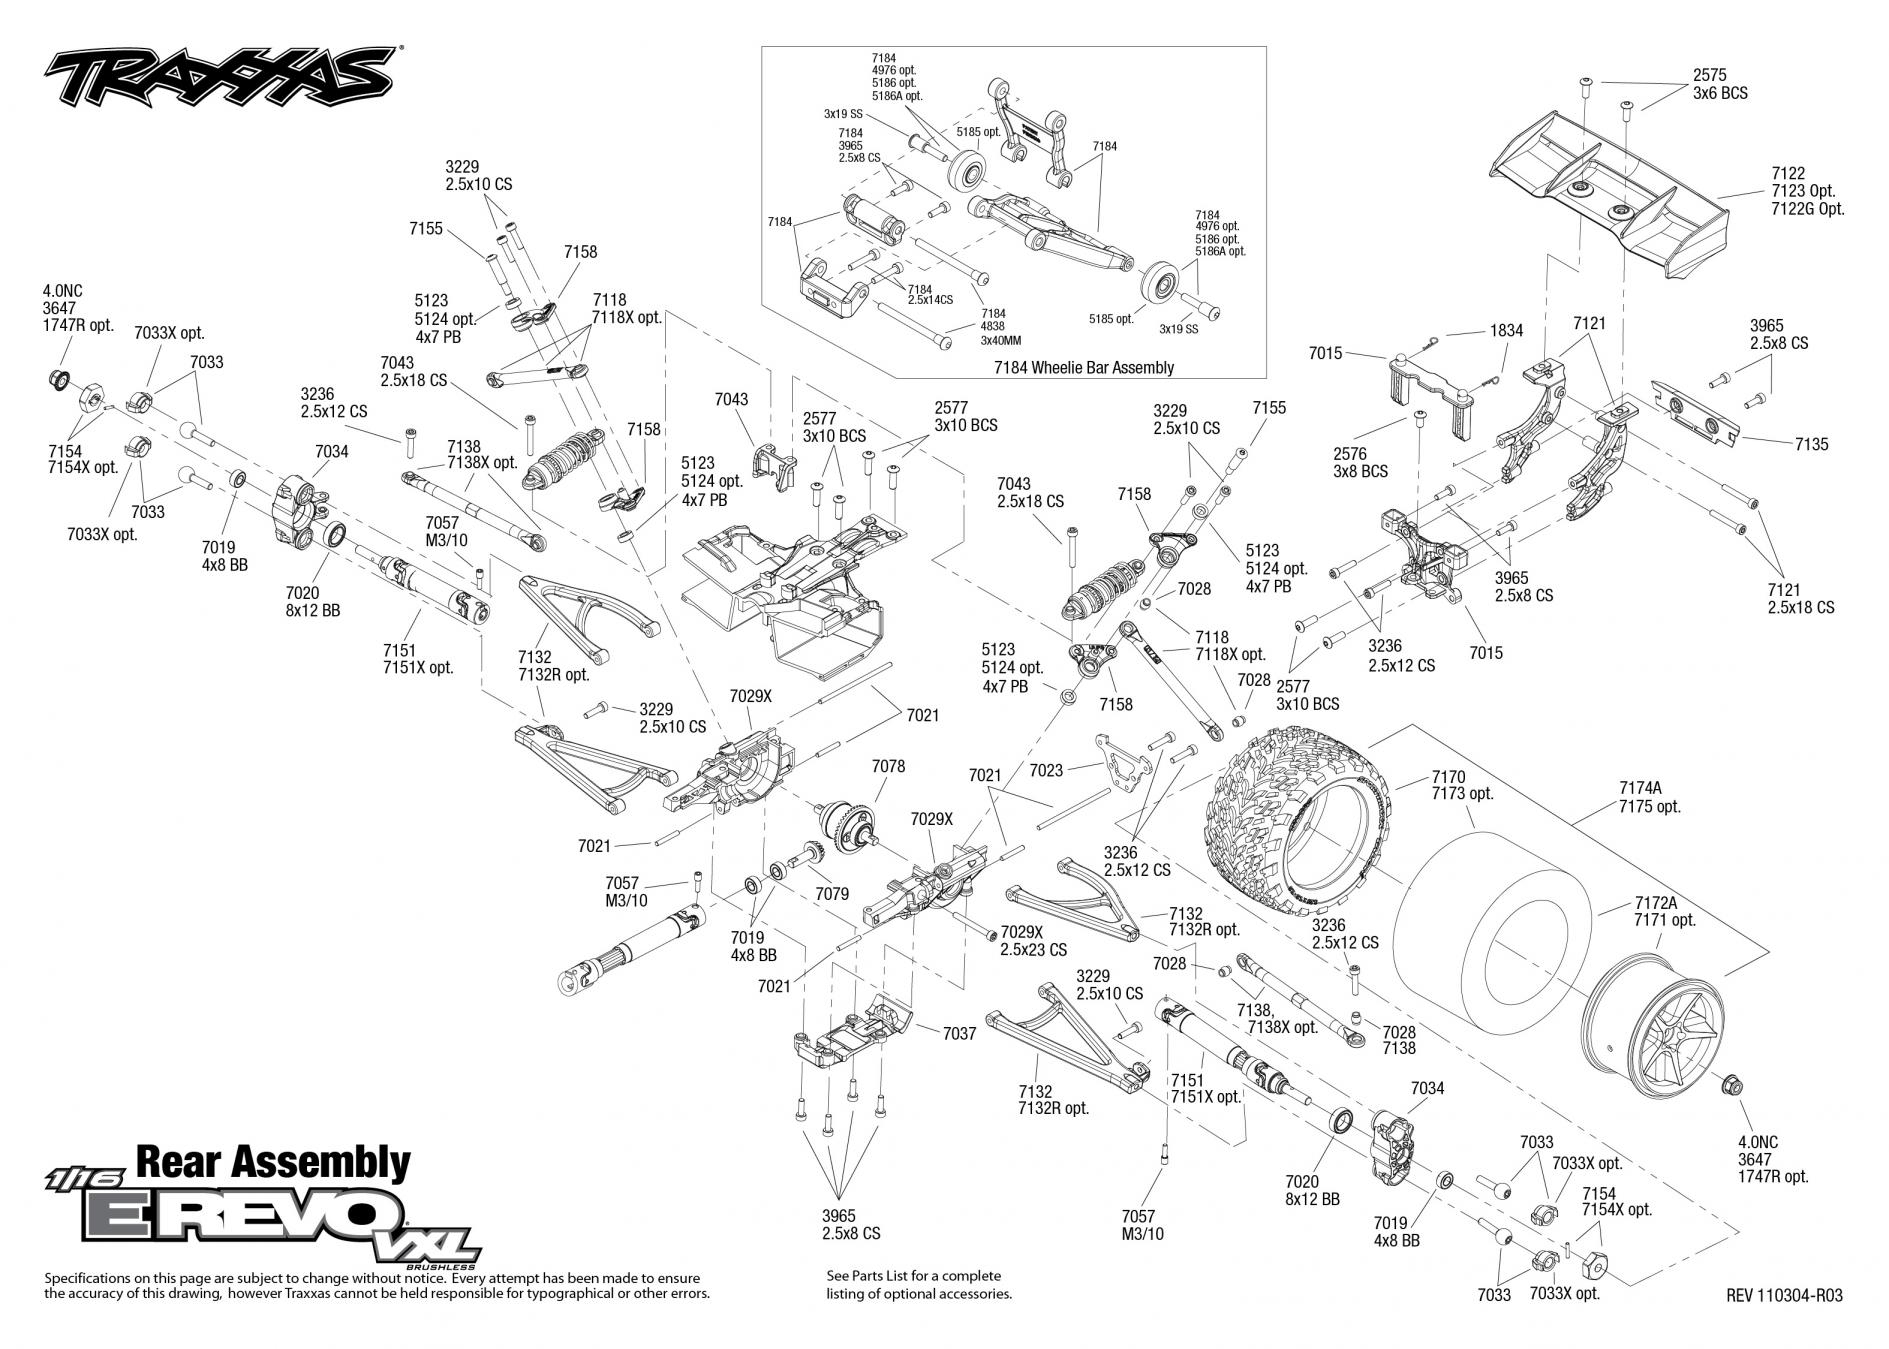 Rant Losi Rtr Manuals